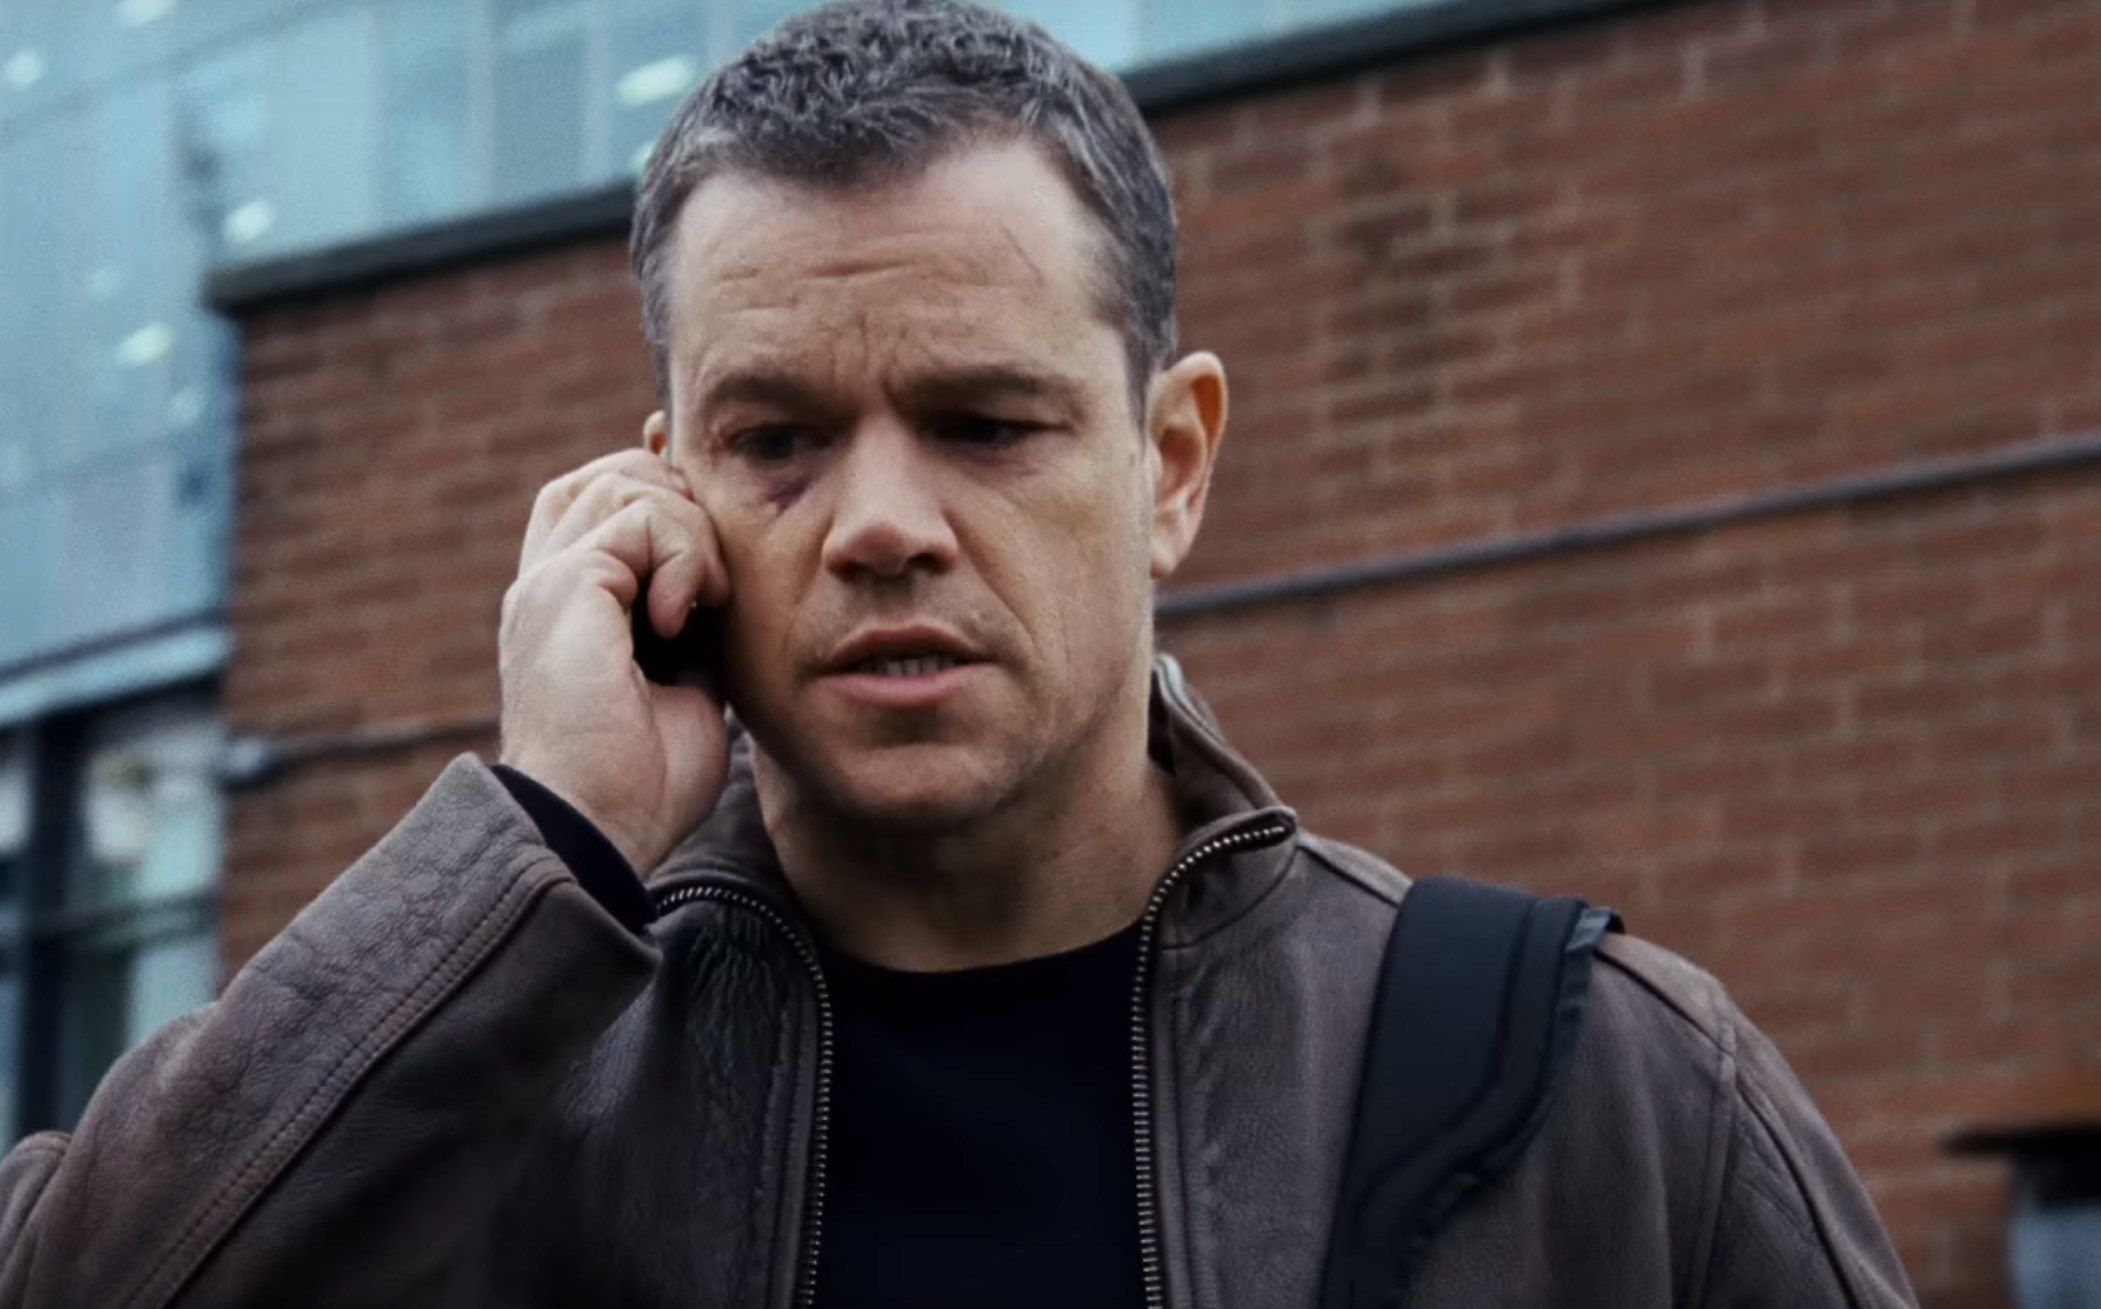 The Bourne Identity nearly ended with Jason Bourne's death